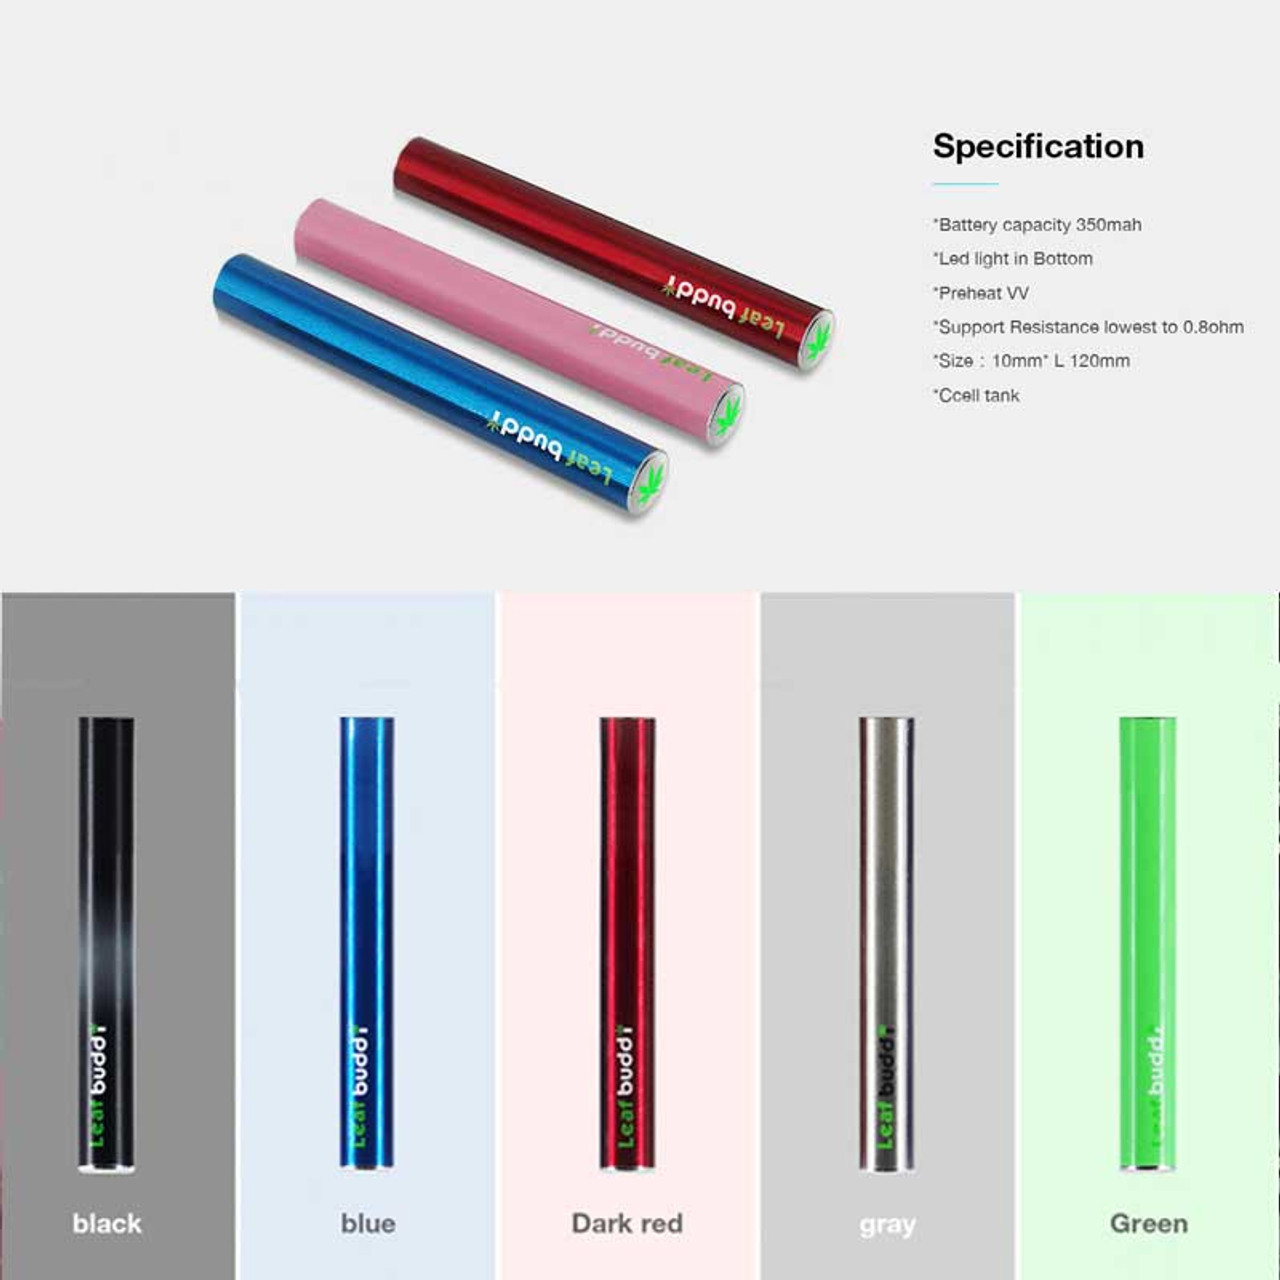 Leaf Buddi CL Ccell CE3 Battery 350mAh With USB Charger (MSRP $8 00)